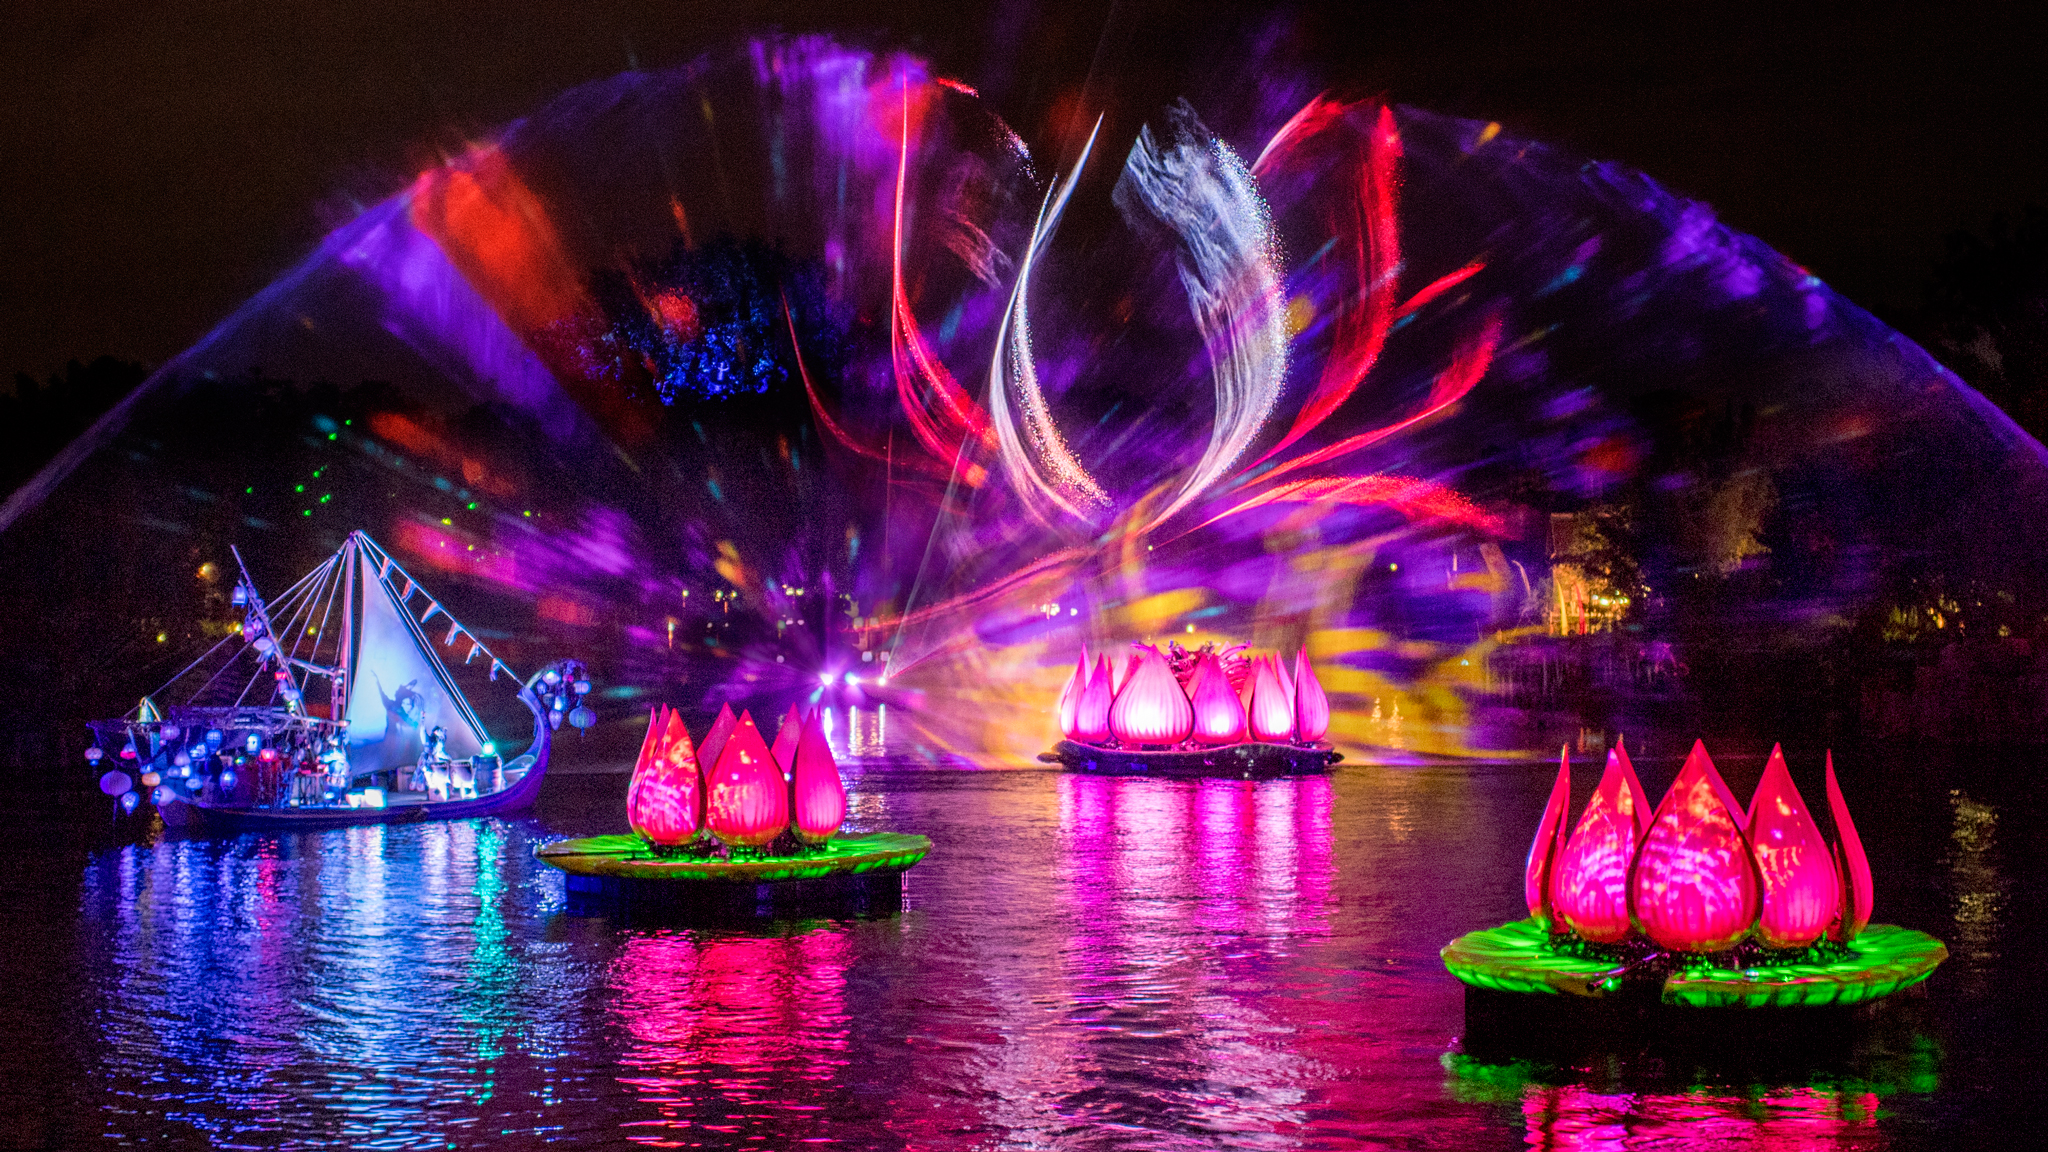 We Are One (Rivers of Light song)